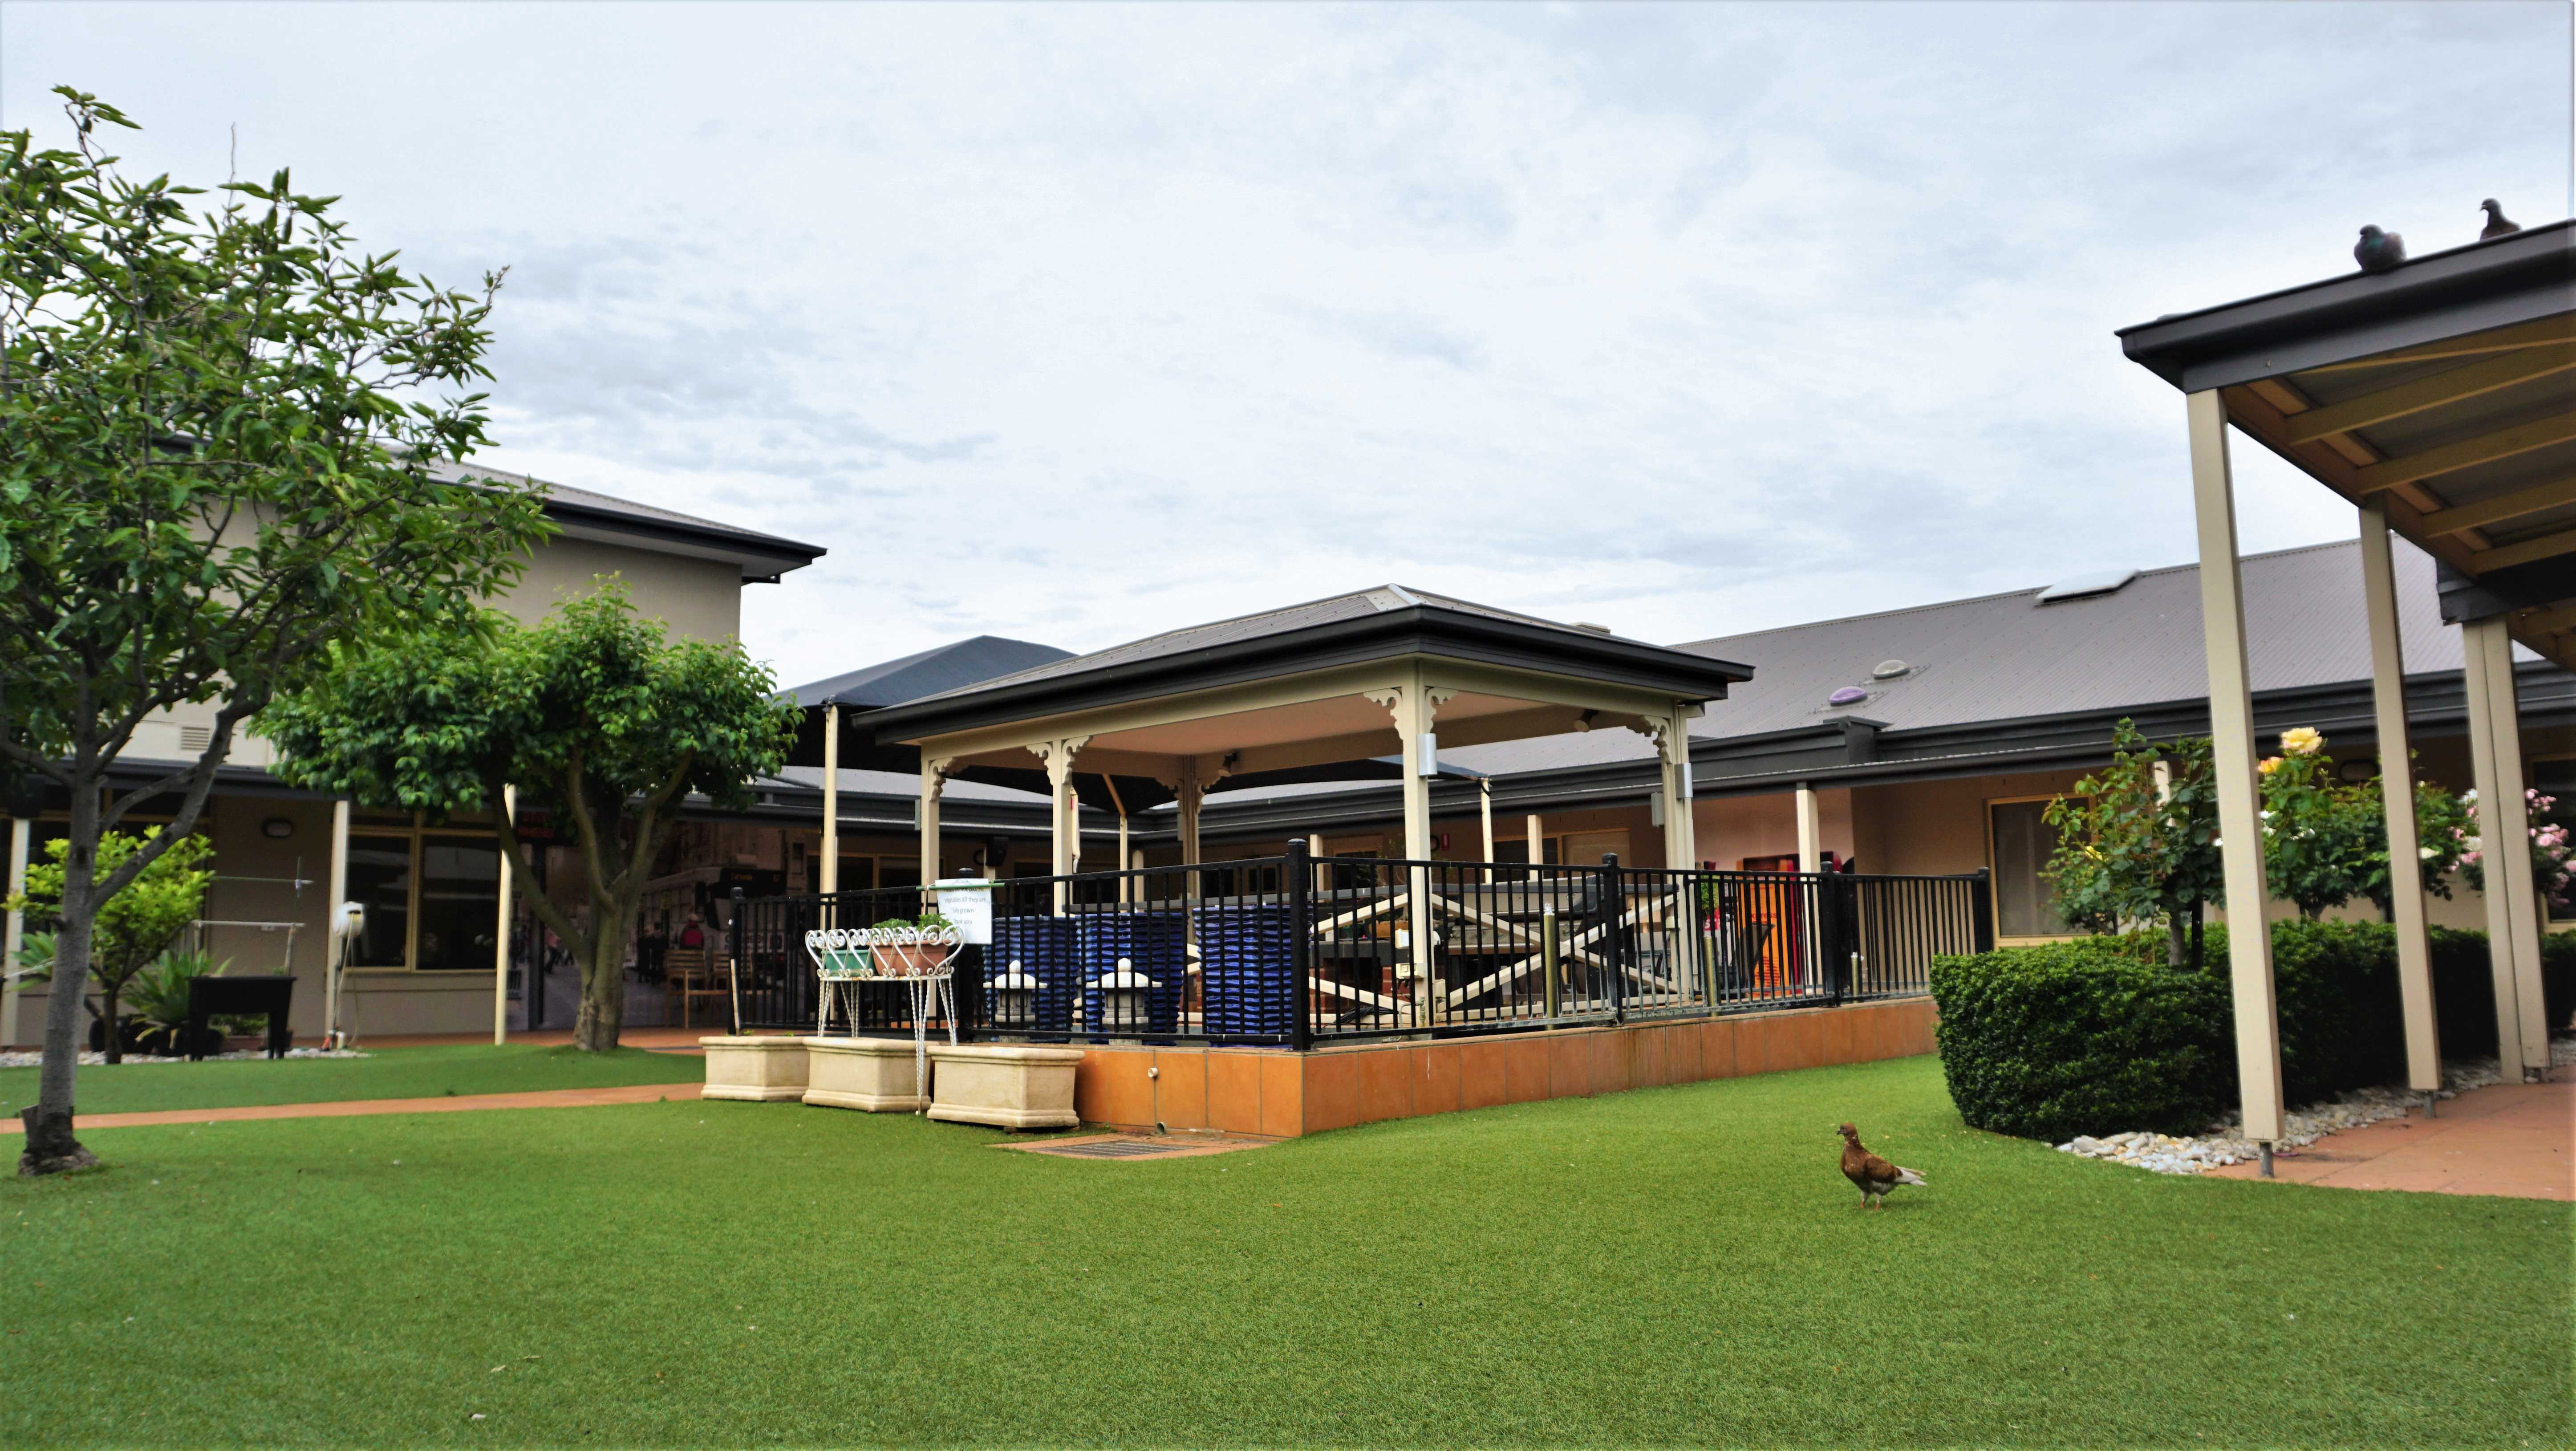 Anzac Lodge Nursing Home, Coburg North VIC 3058 - Courtyard with BBQ facilities, dementia murals, fruit and vegie planter boxes, pond and pigeon feeding